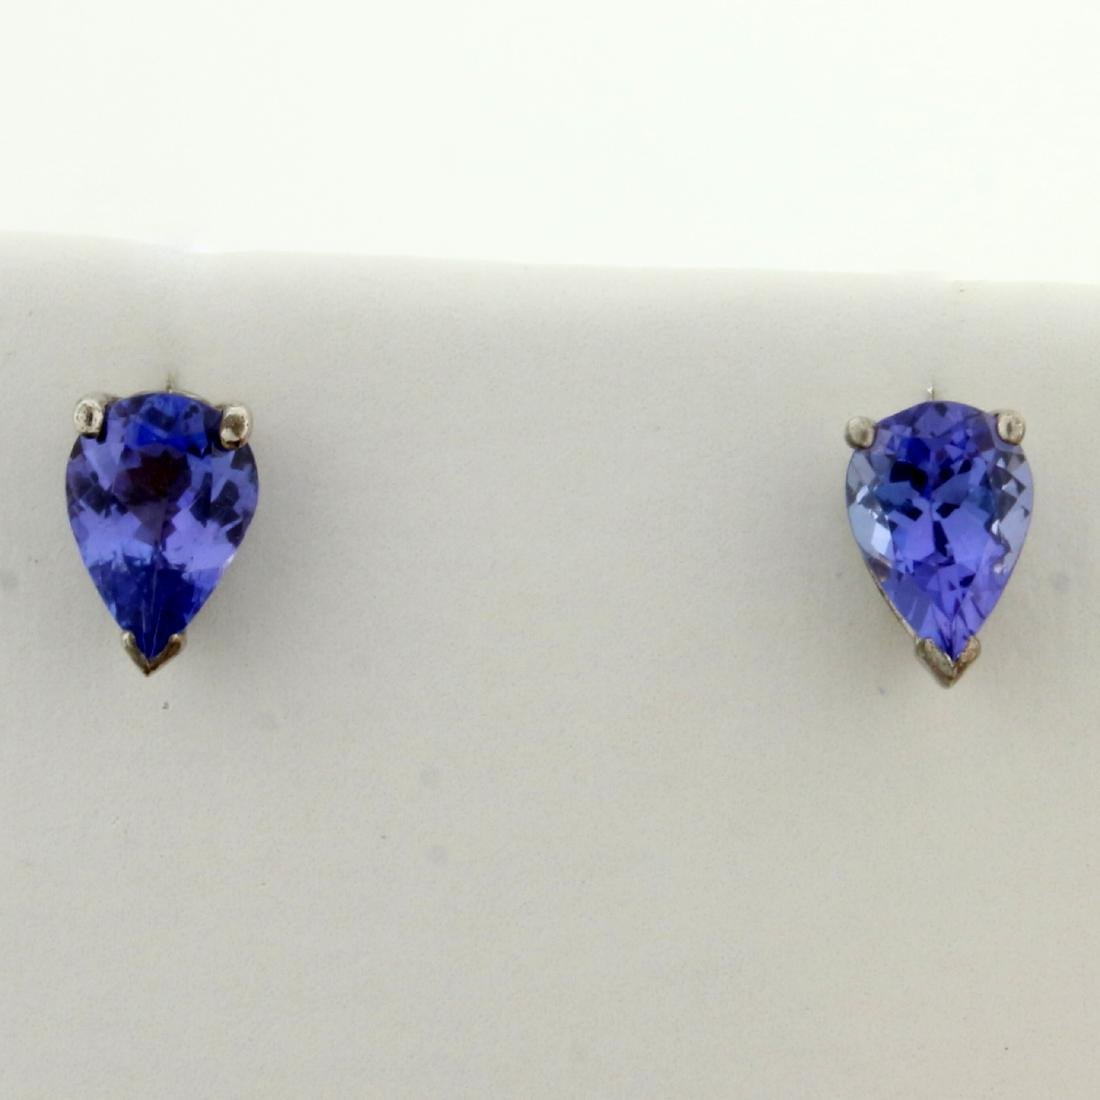 1.5ct TW Lab Tanzanite Stud Earrings in Sterling Silver